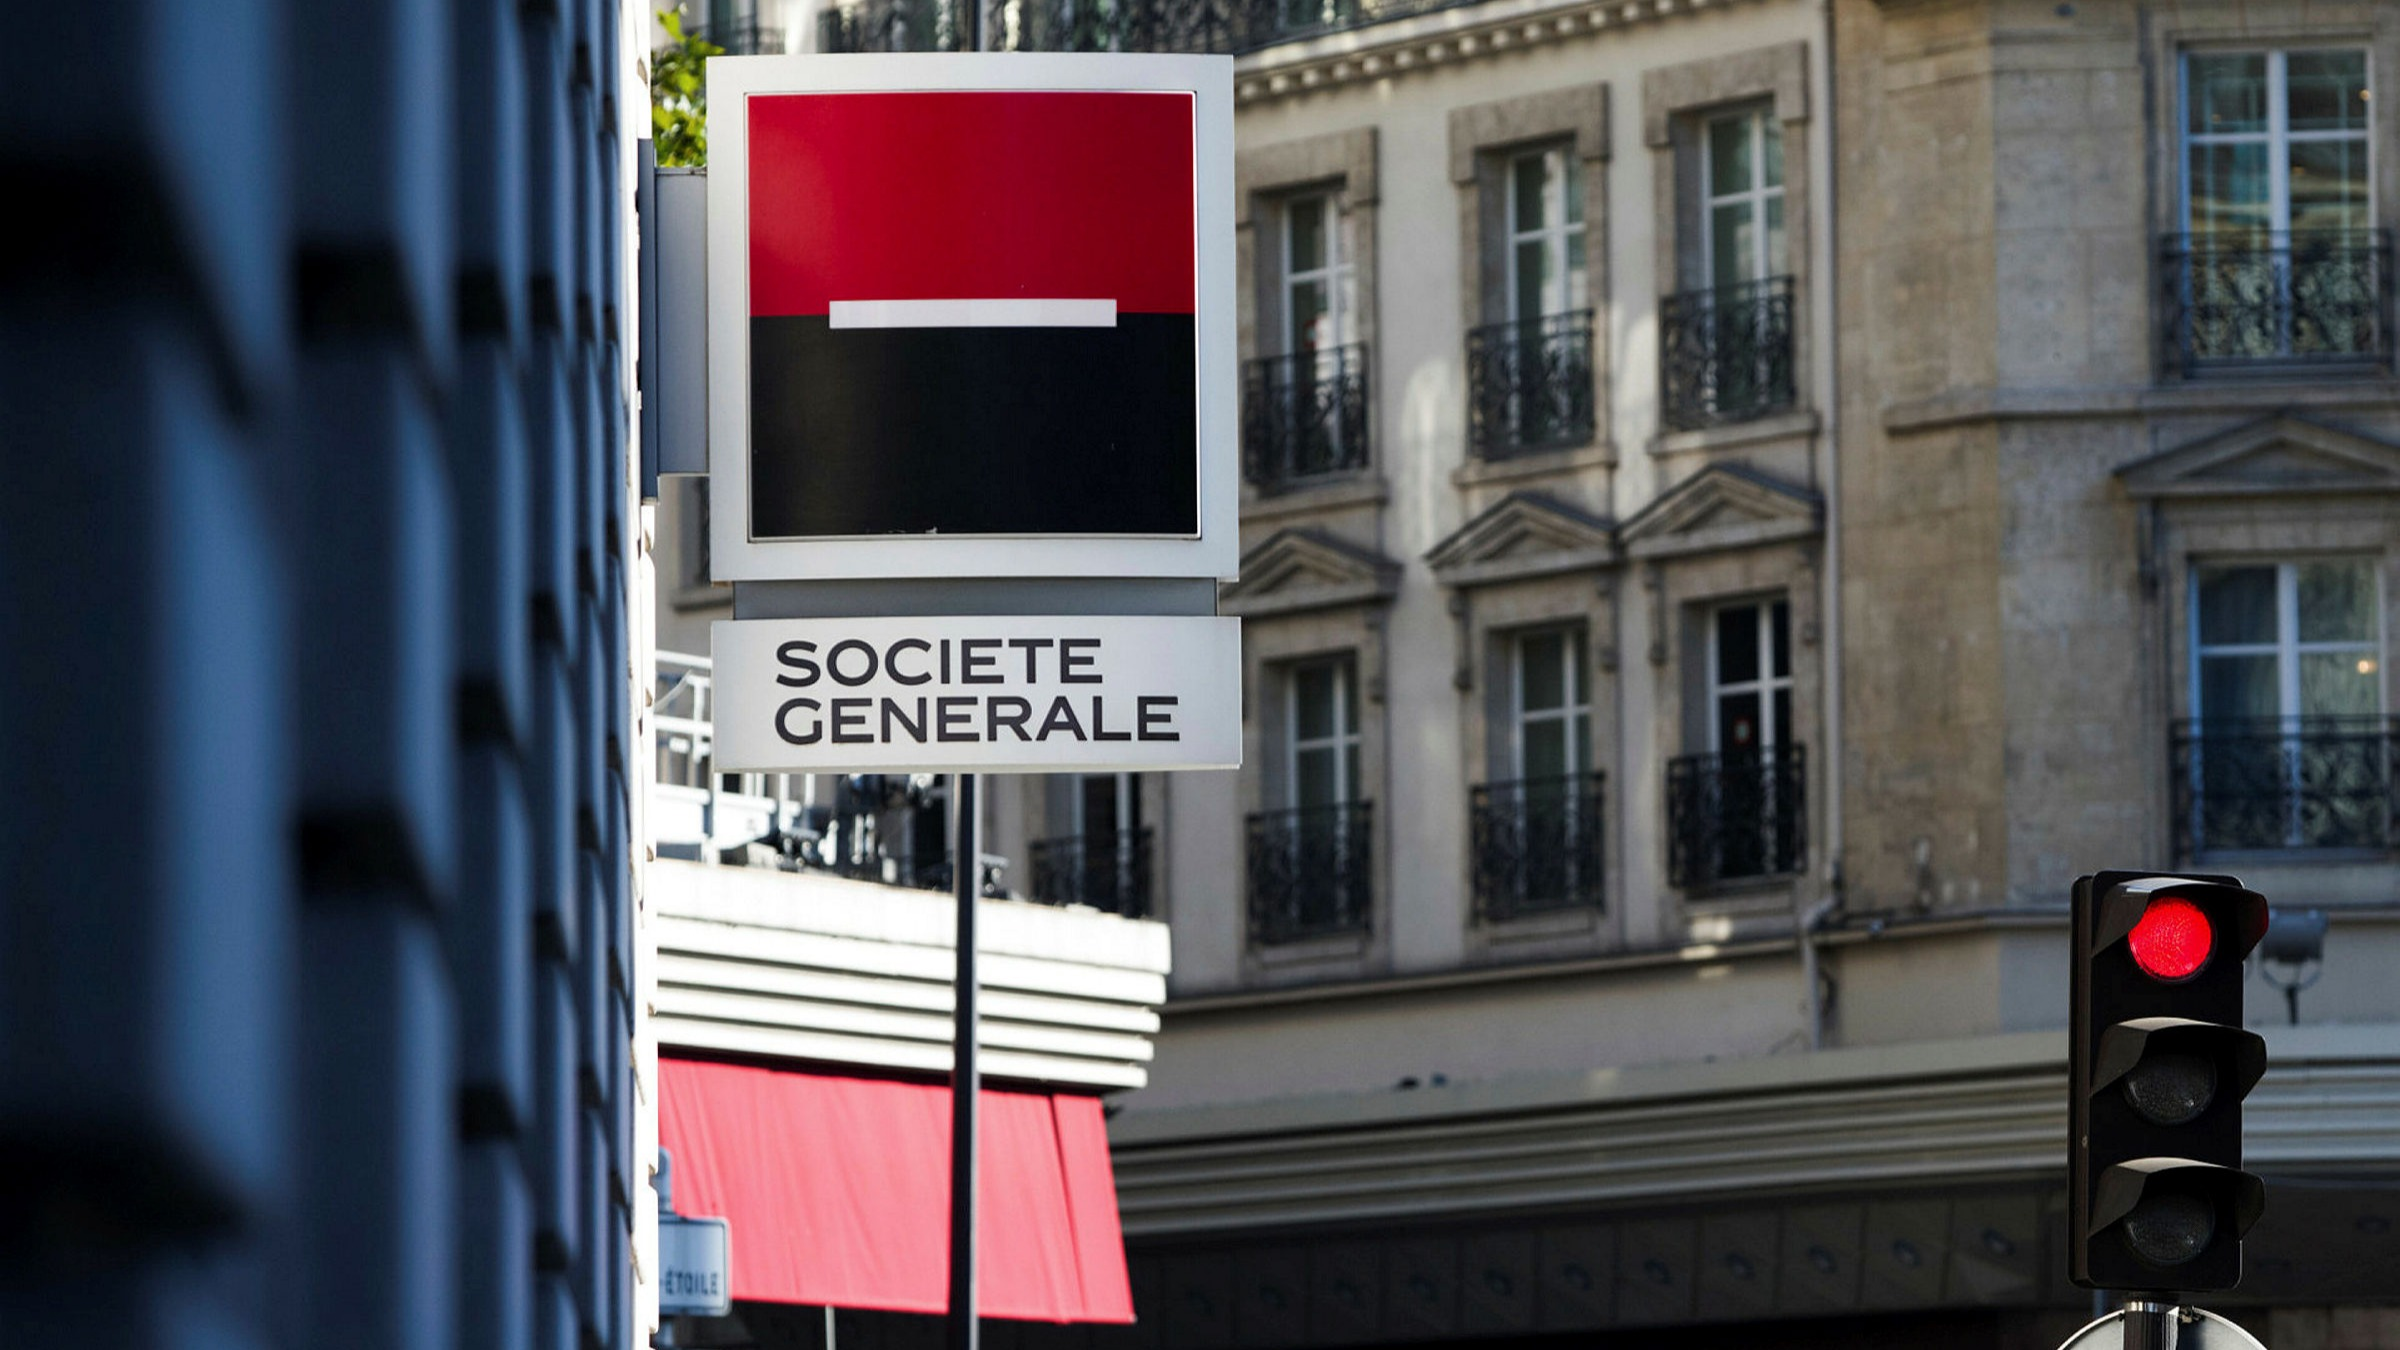 Société Générale missed out on the surge in trading in the spring when clients frantically repositioned their portfolios